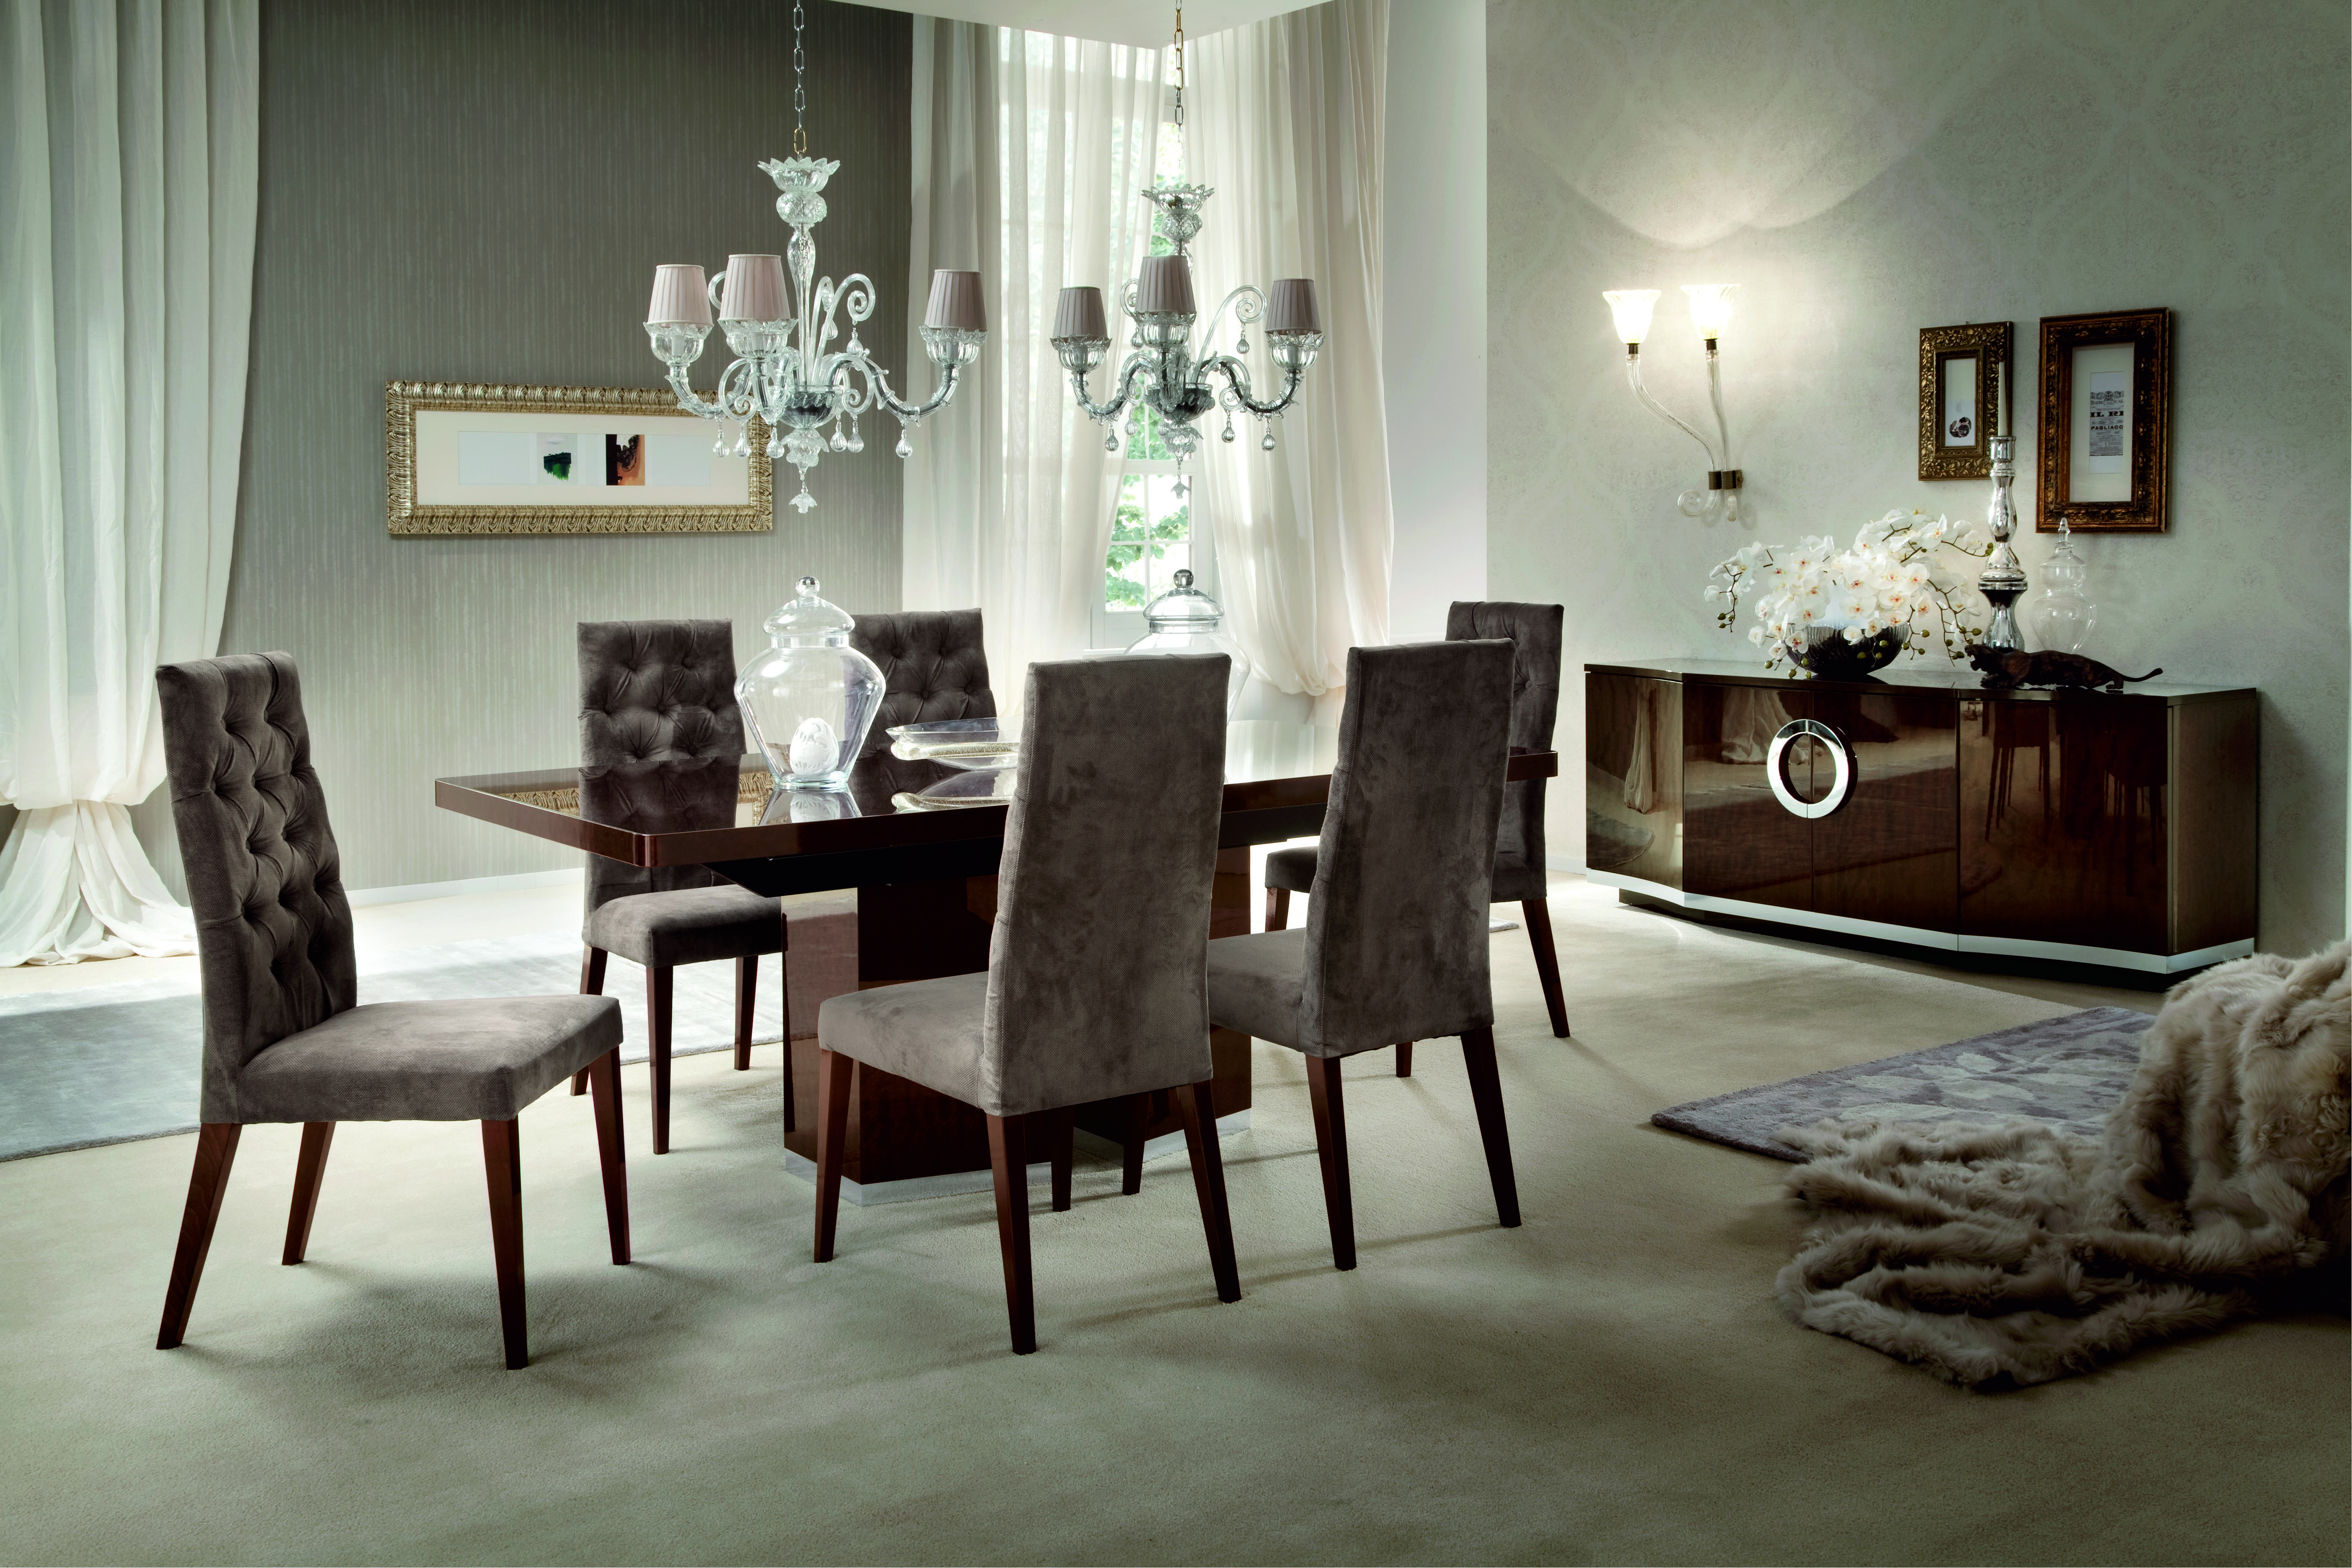 Home plisset italian designs clear glass dining table with aldo faux - Introducing One Of Italy S Newest And Richest Designs The Monaco Dining Set Is Presented In A High Gloss Velvet Birch Finish Inlaid With Chrome M